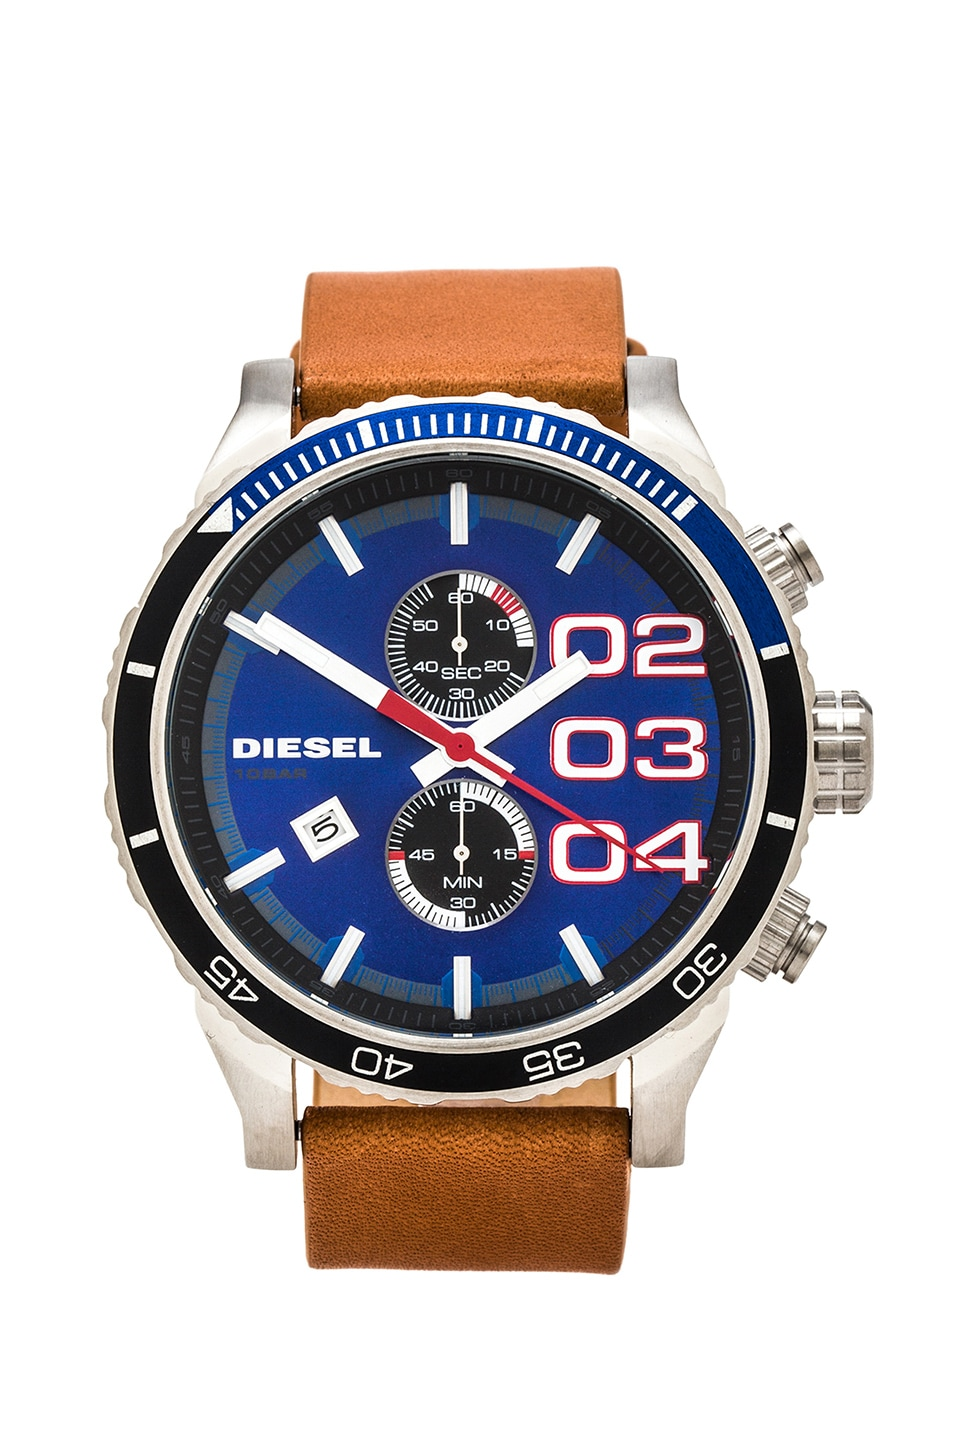 Diesel DZ4322 in Tan & Blue